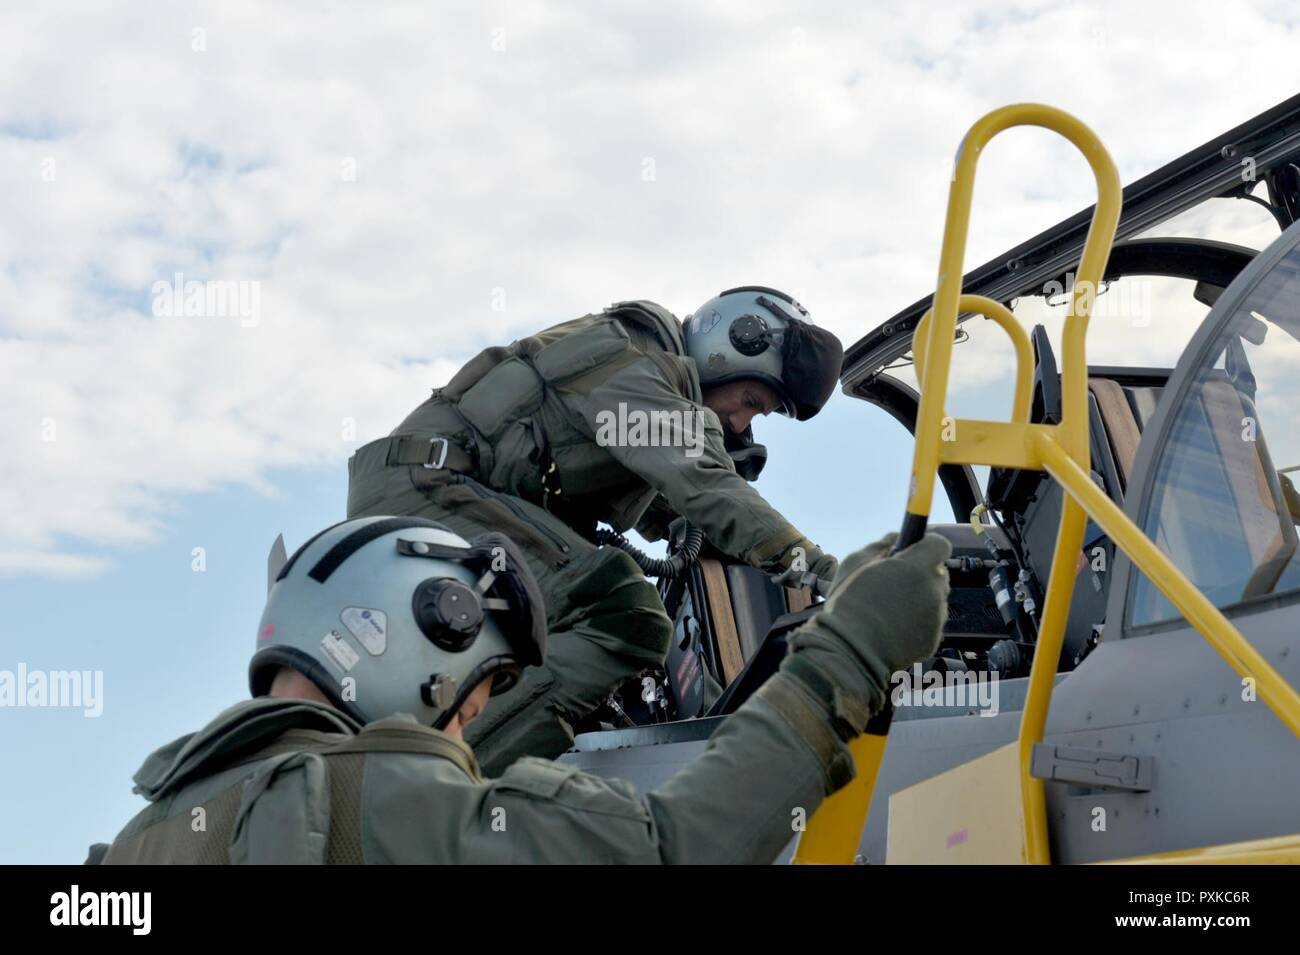 Lt  Col  Michael Holy, an F-16 Fighting Falcon pilot